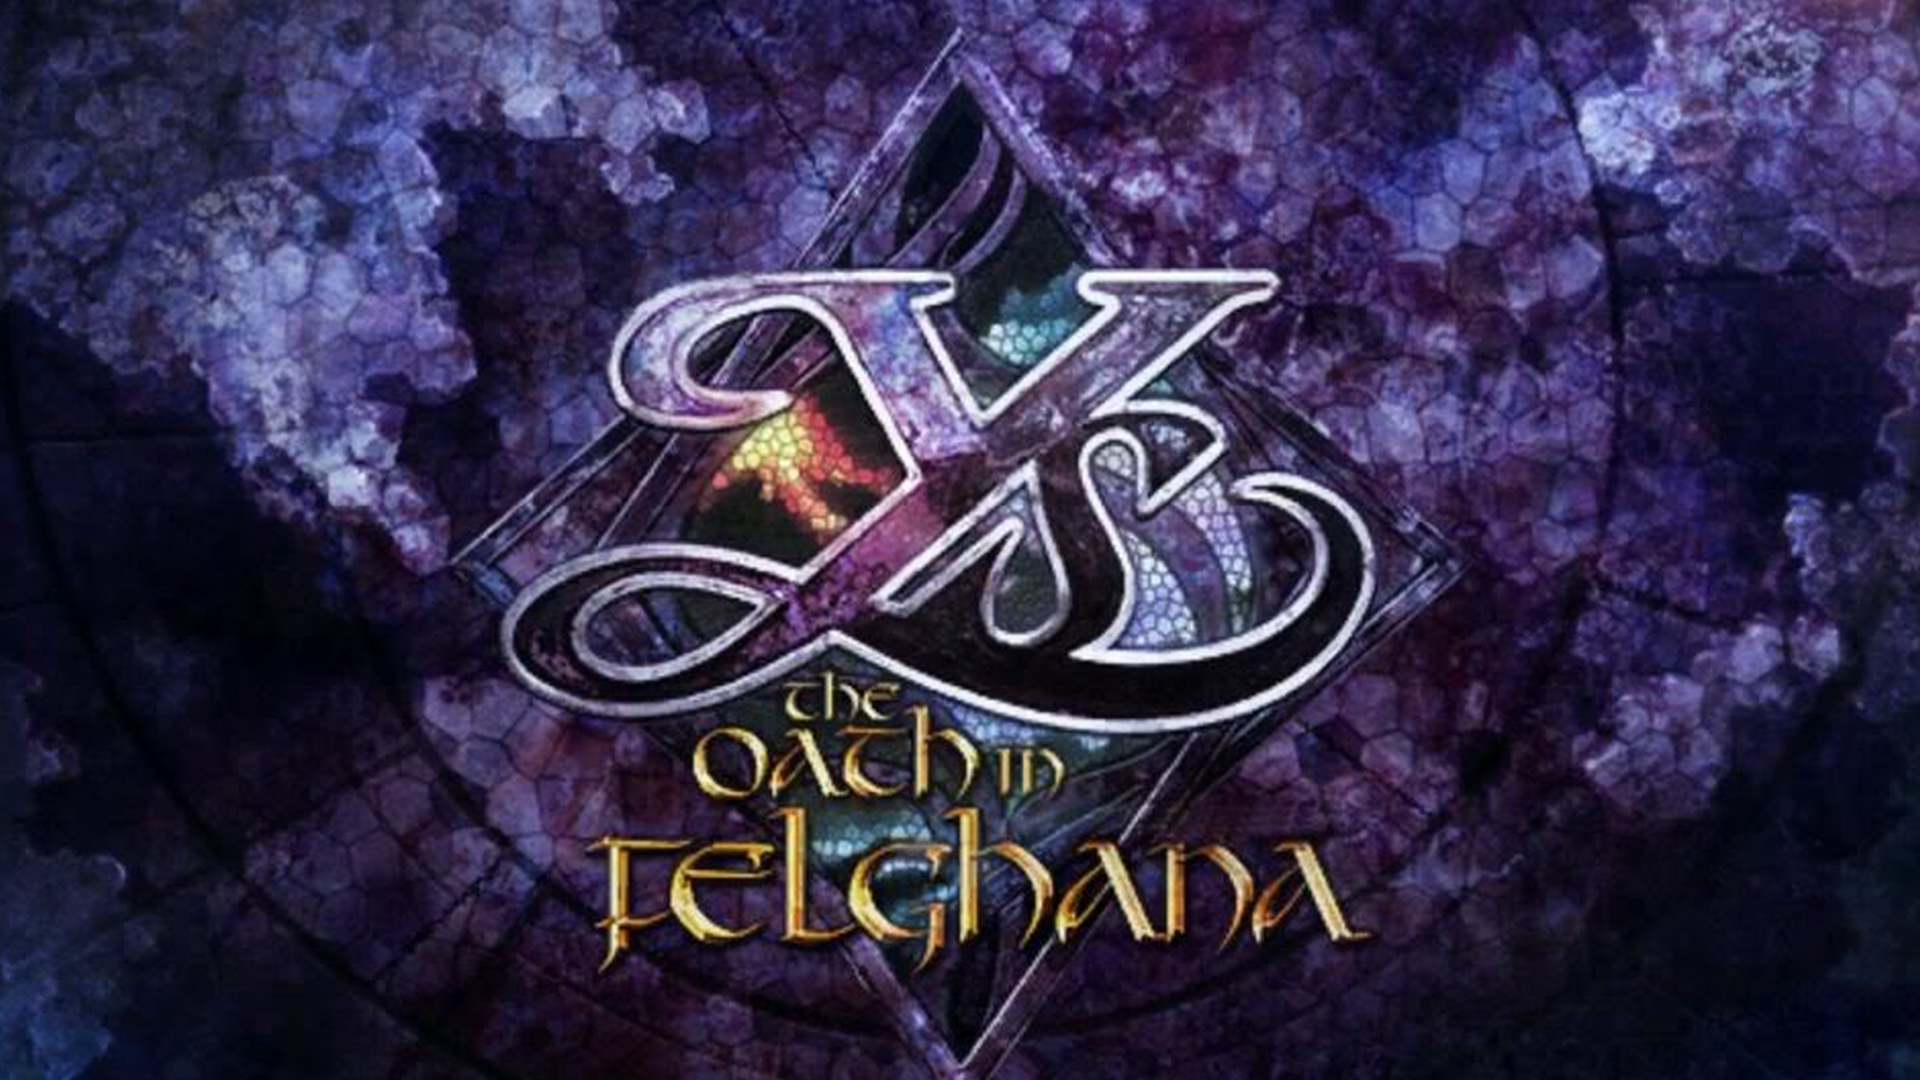 Ys: The Oath in Felghana Logo